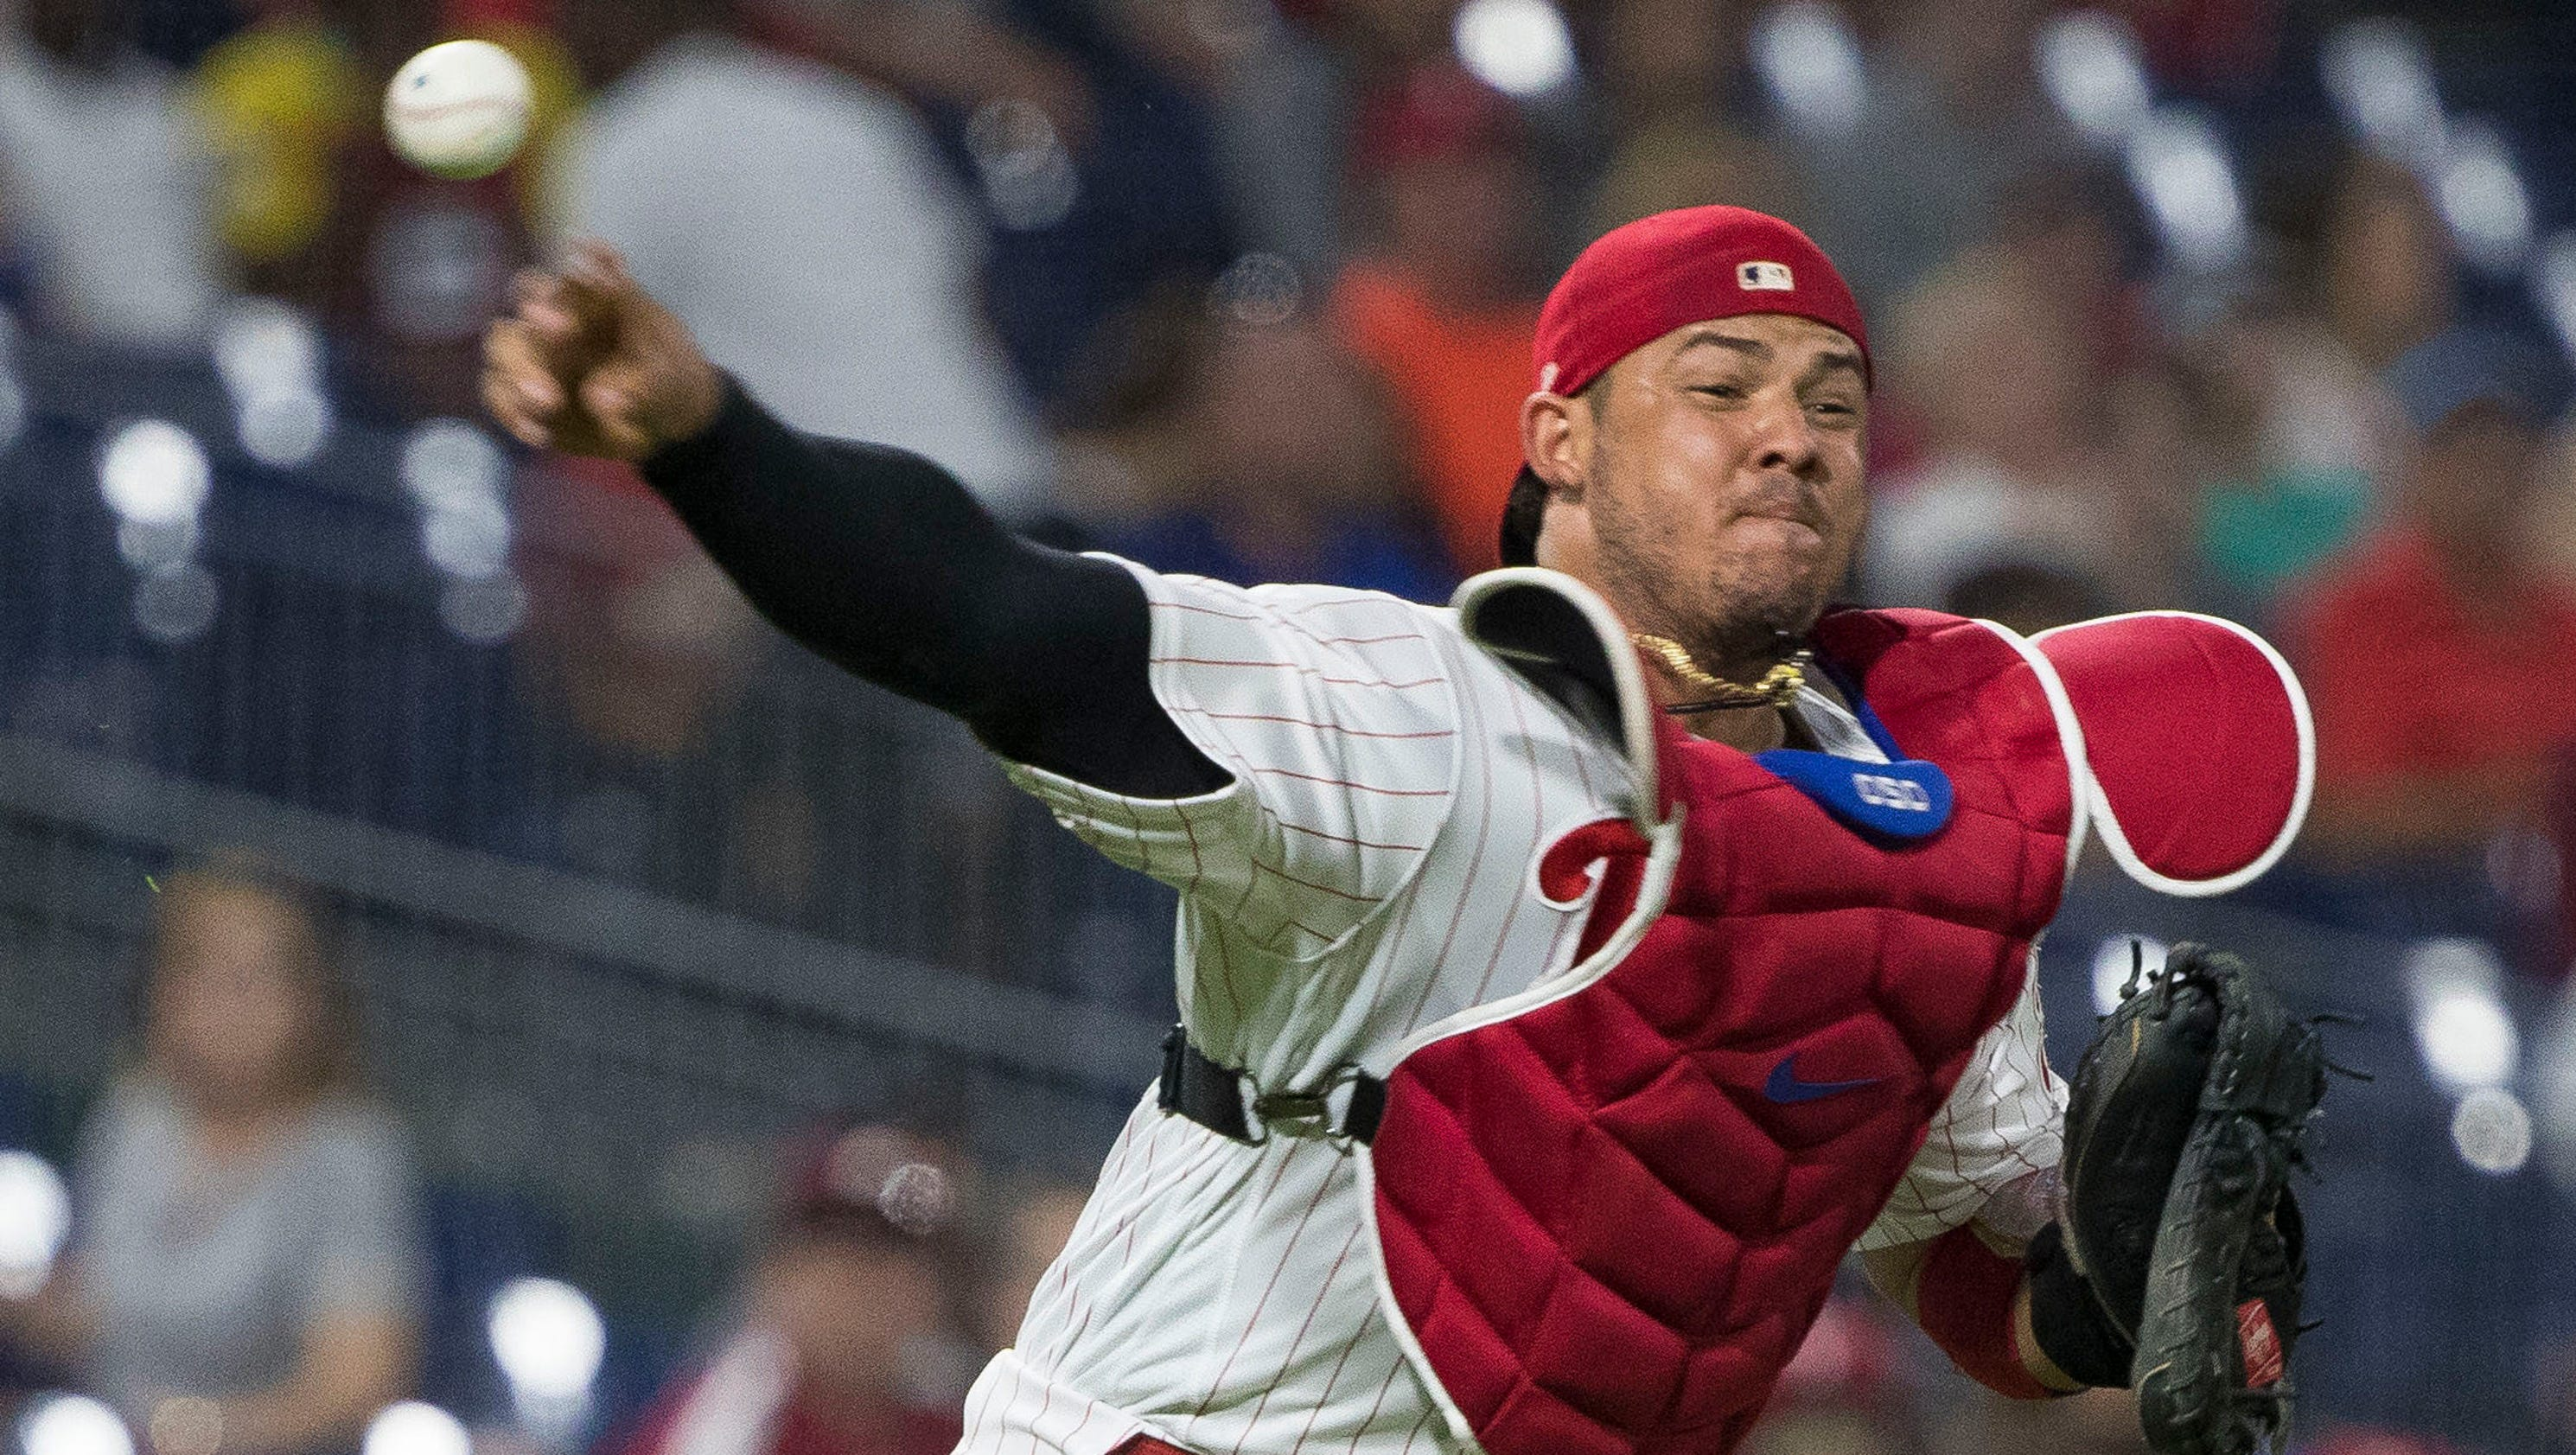 Phillies' Gabe Kapler: Jorge Alfaro and Pudge Rodriguez are 'neck-and-neck, at worst'